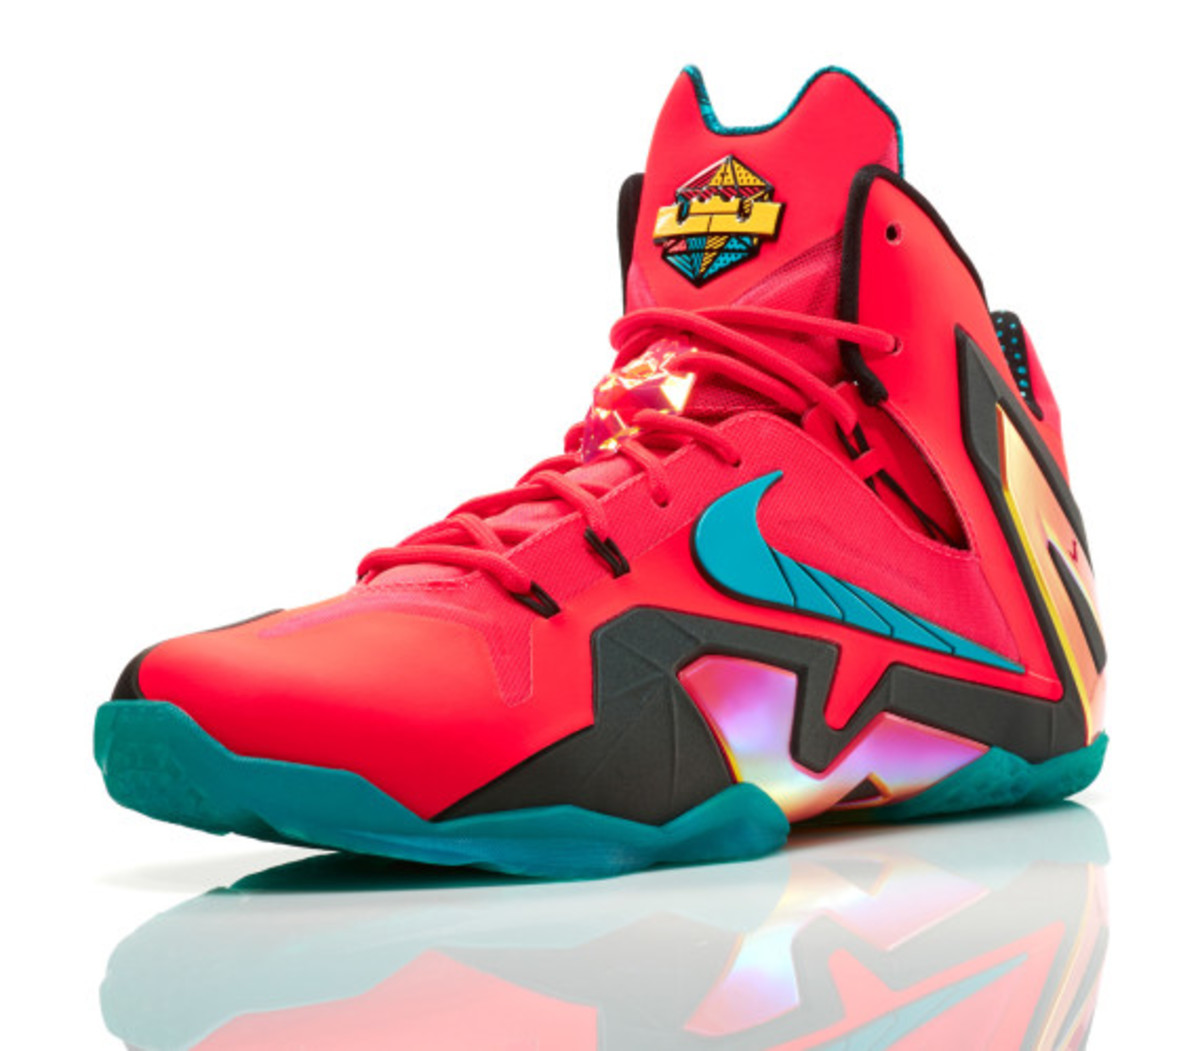 Nike LeBron 11 Elite Hero | Officially Unveiled - 0